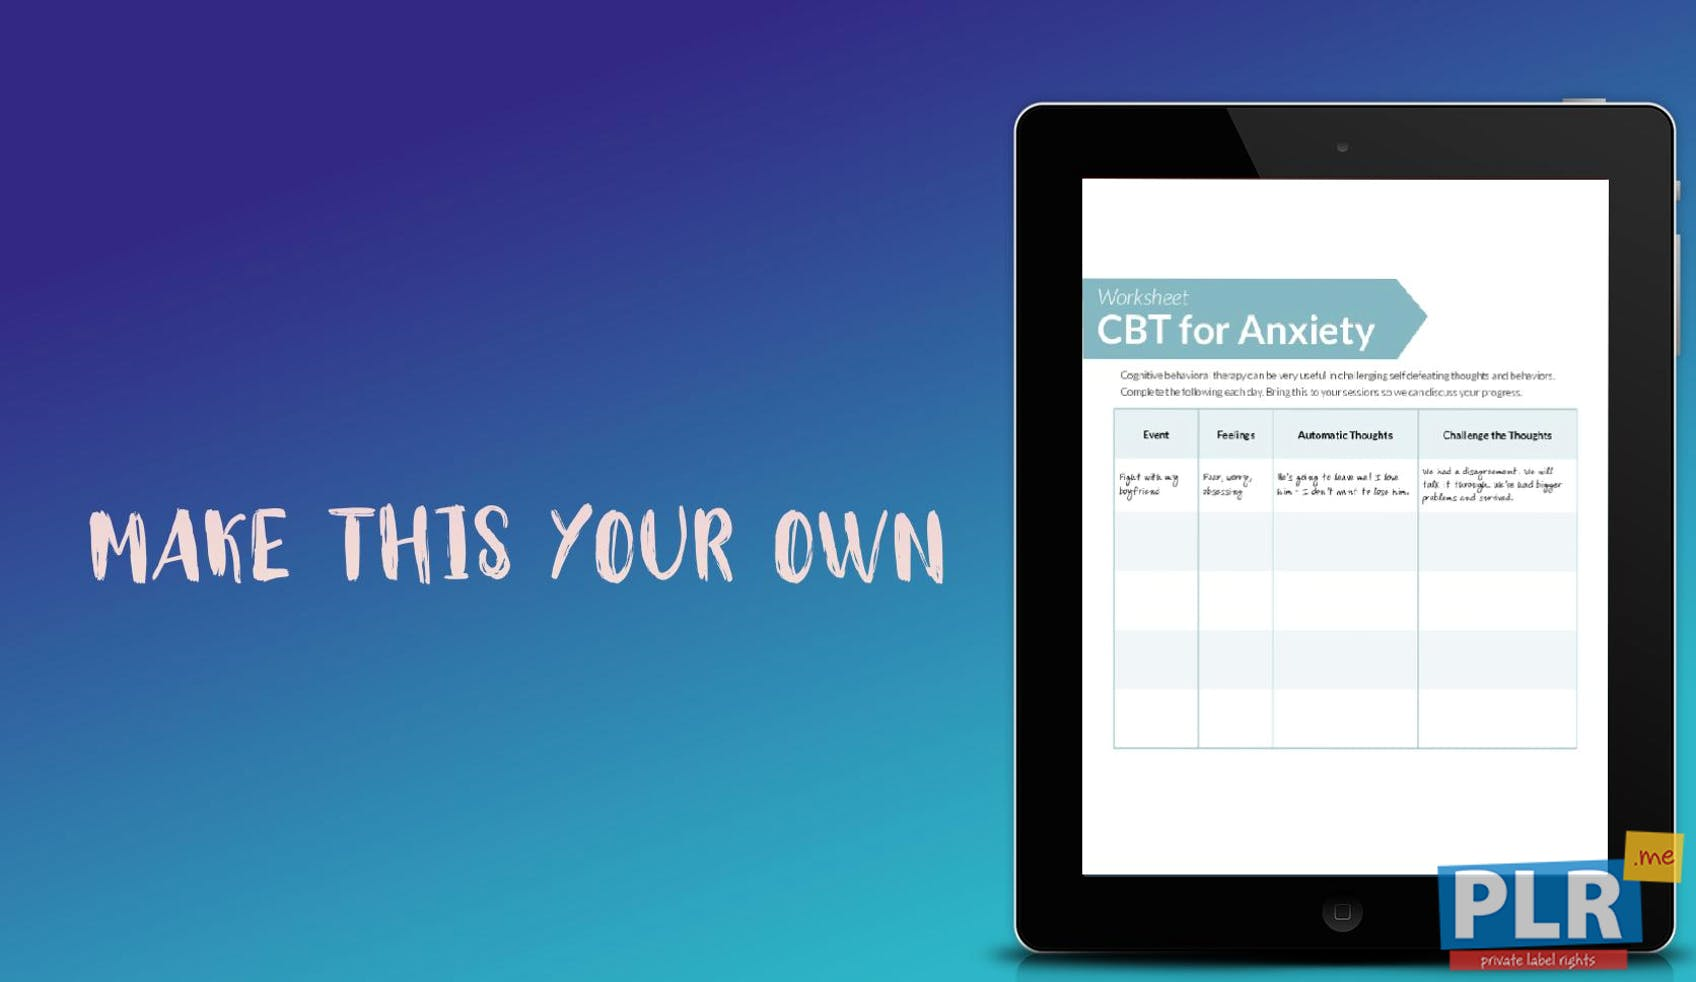 PLR Worksheets - Cbt For Anxiety Worksheet - PLR.me